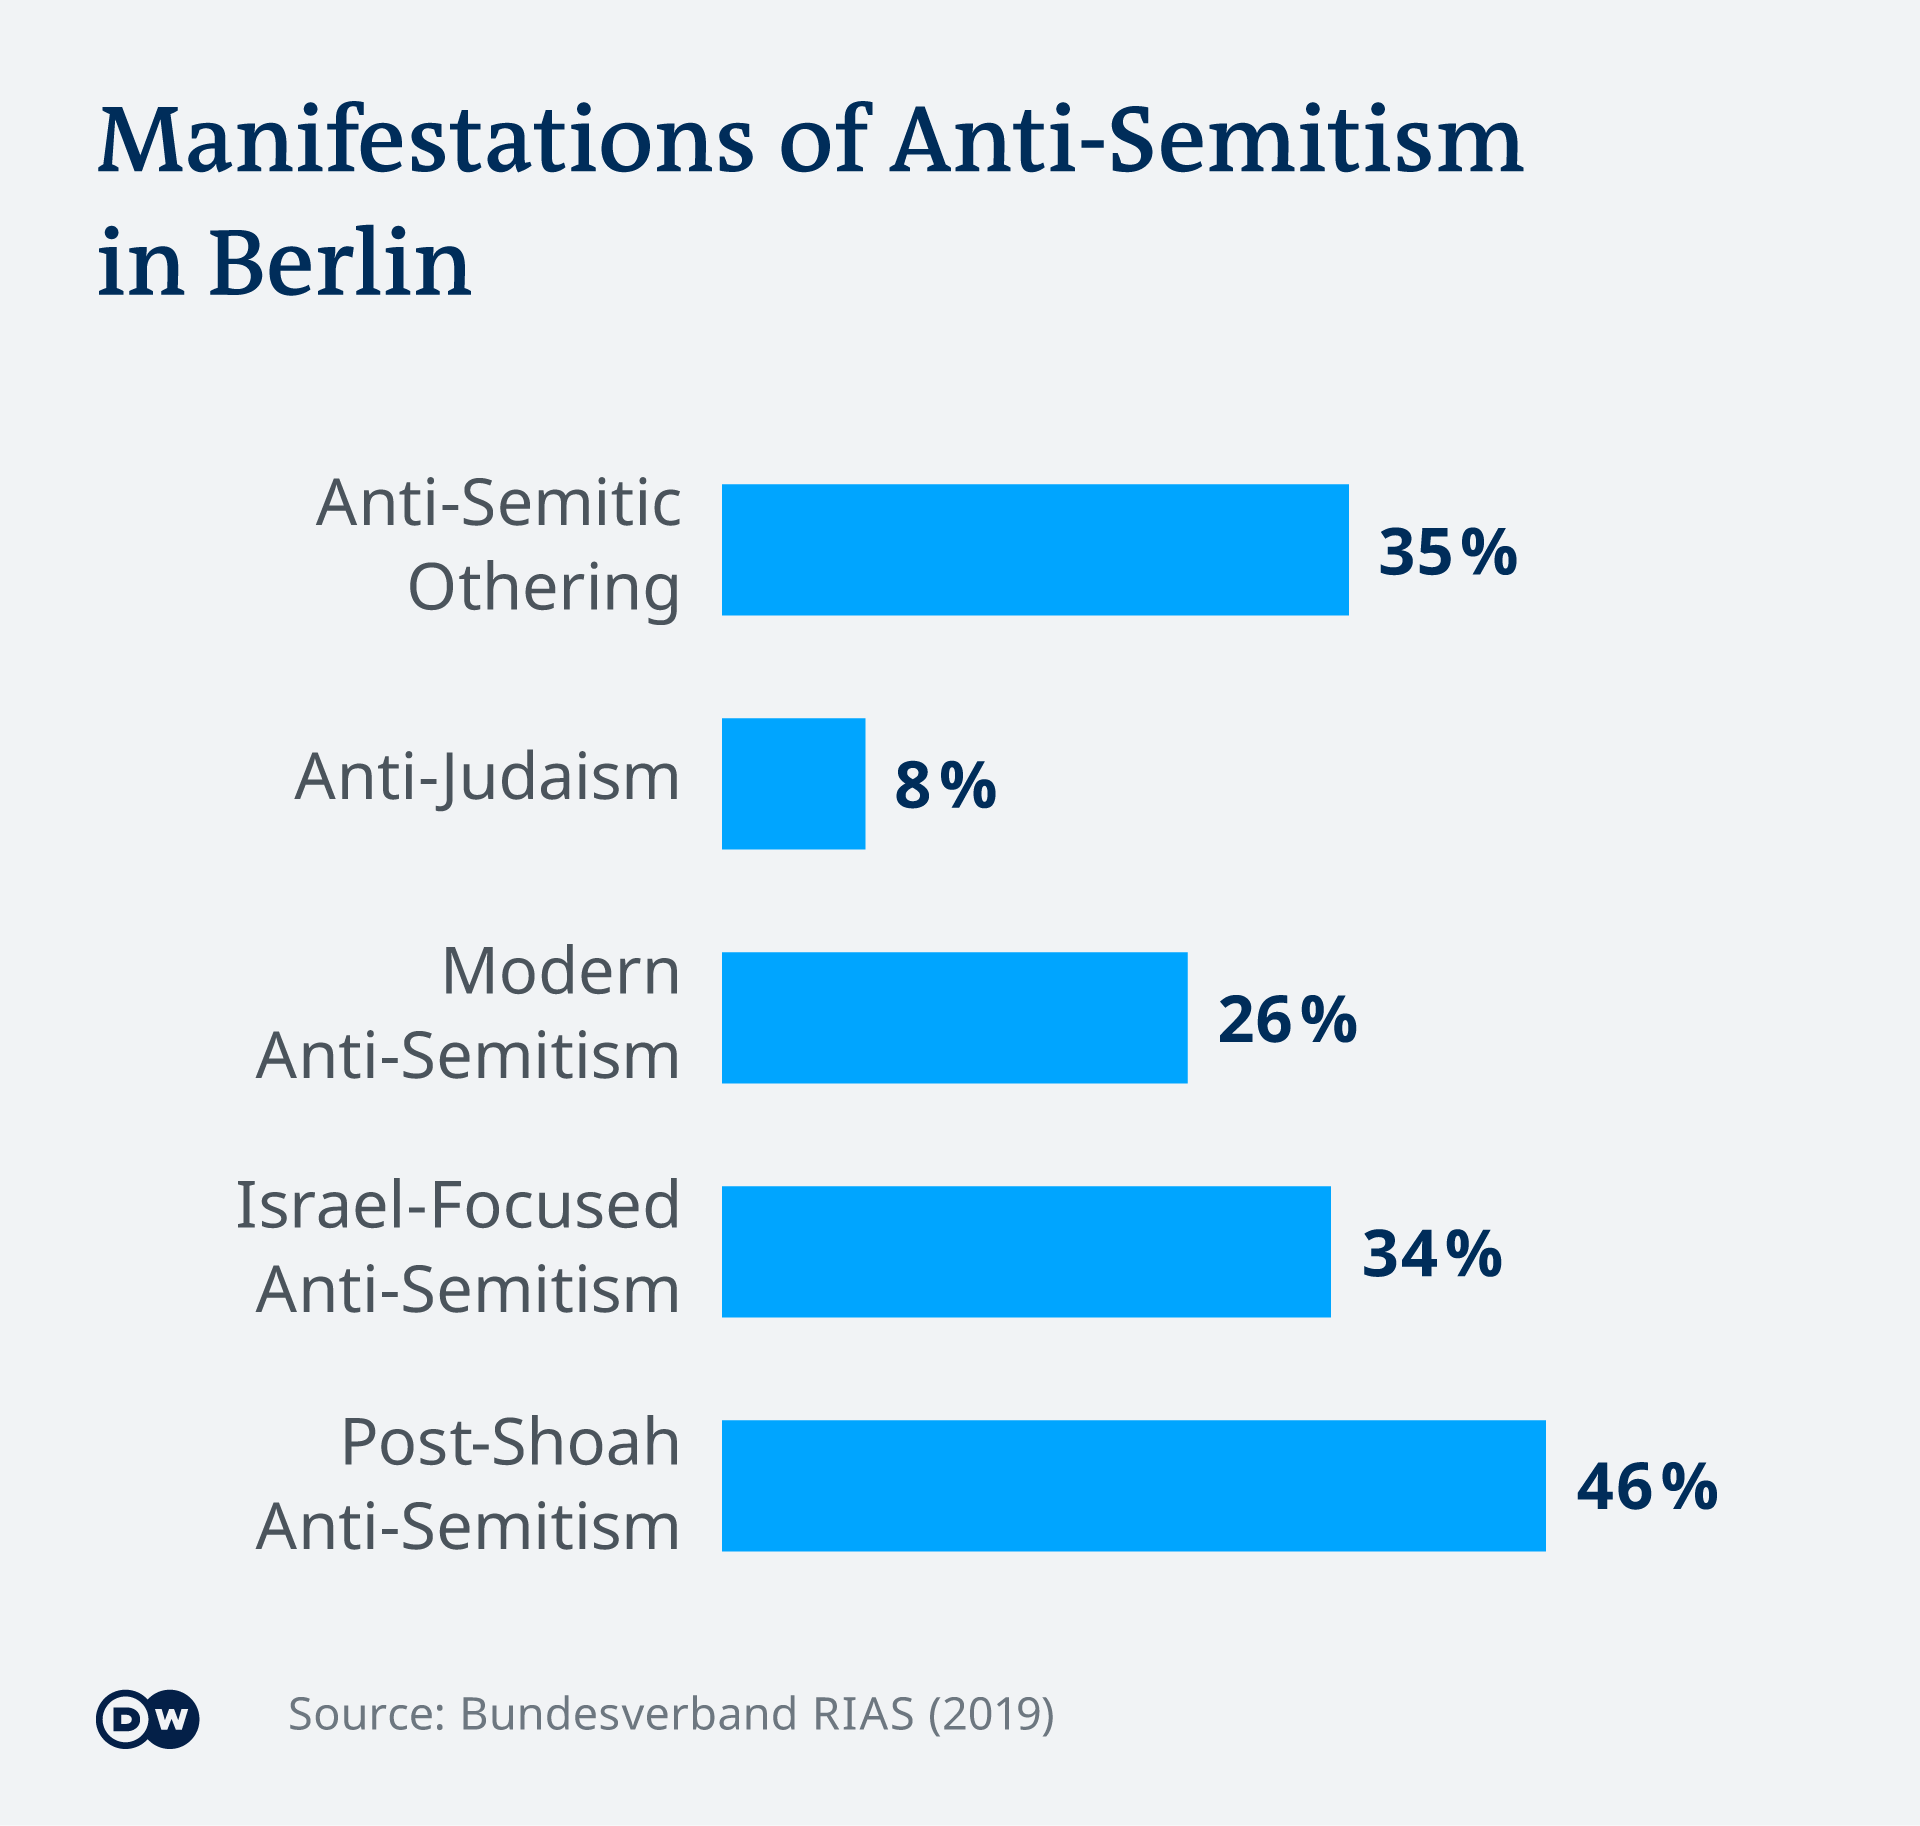 Infographic showing manifestations of anti-Semitism in Berlin